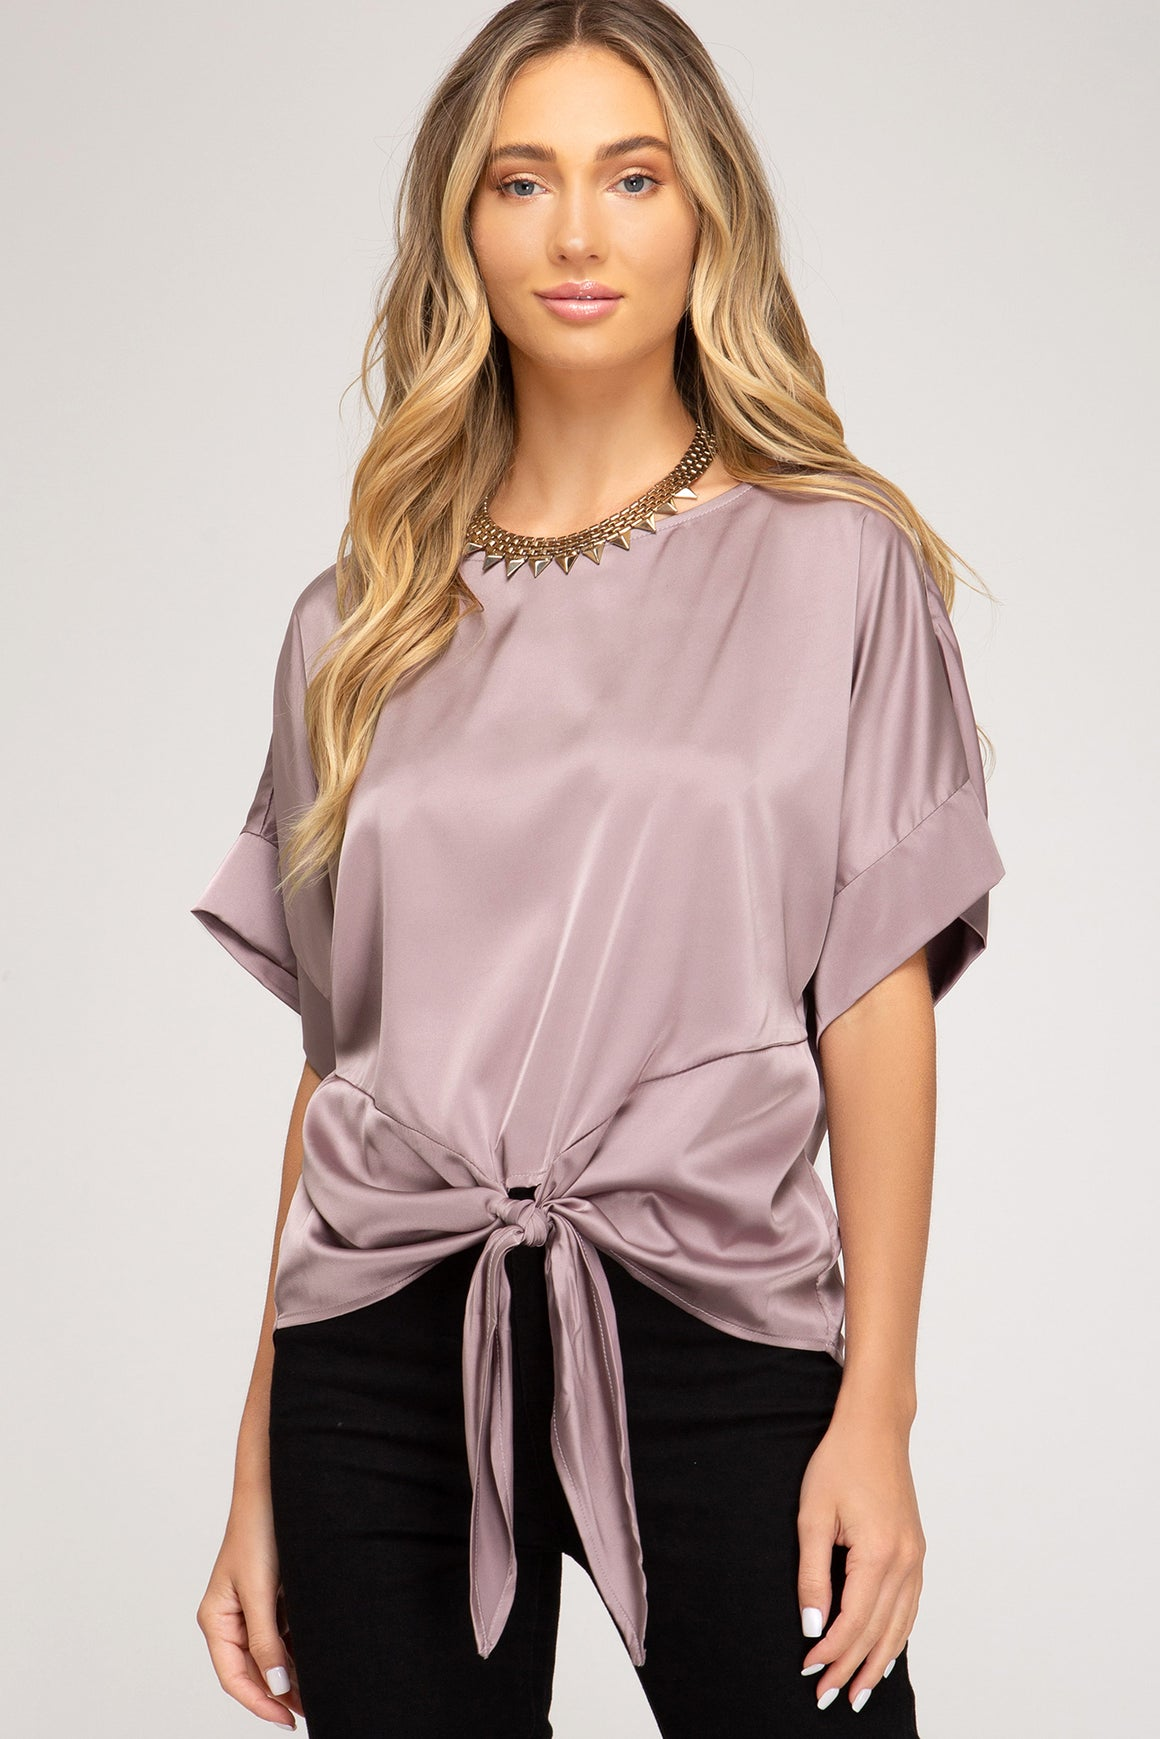 Short Sleeve Satin Top!